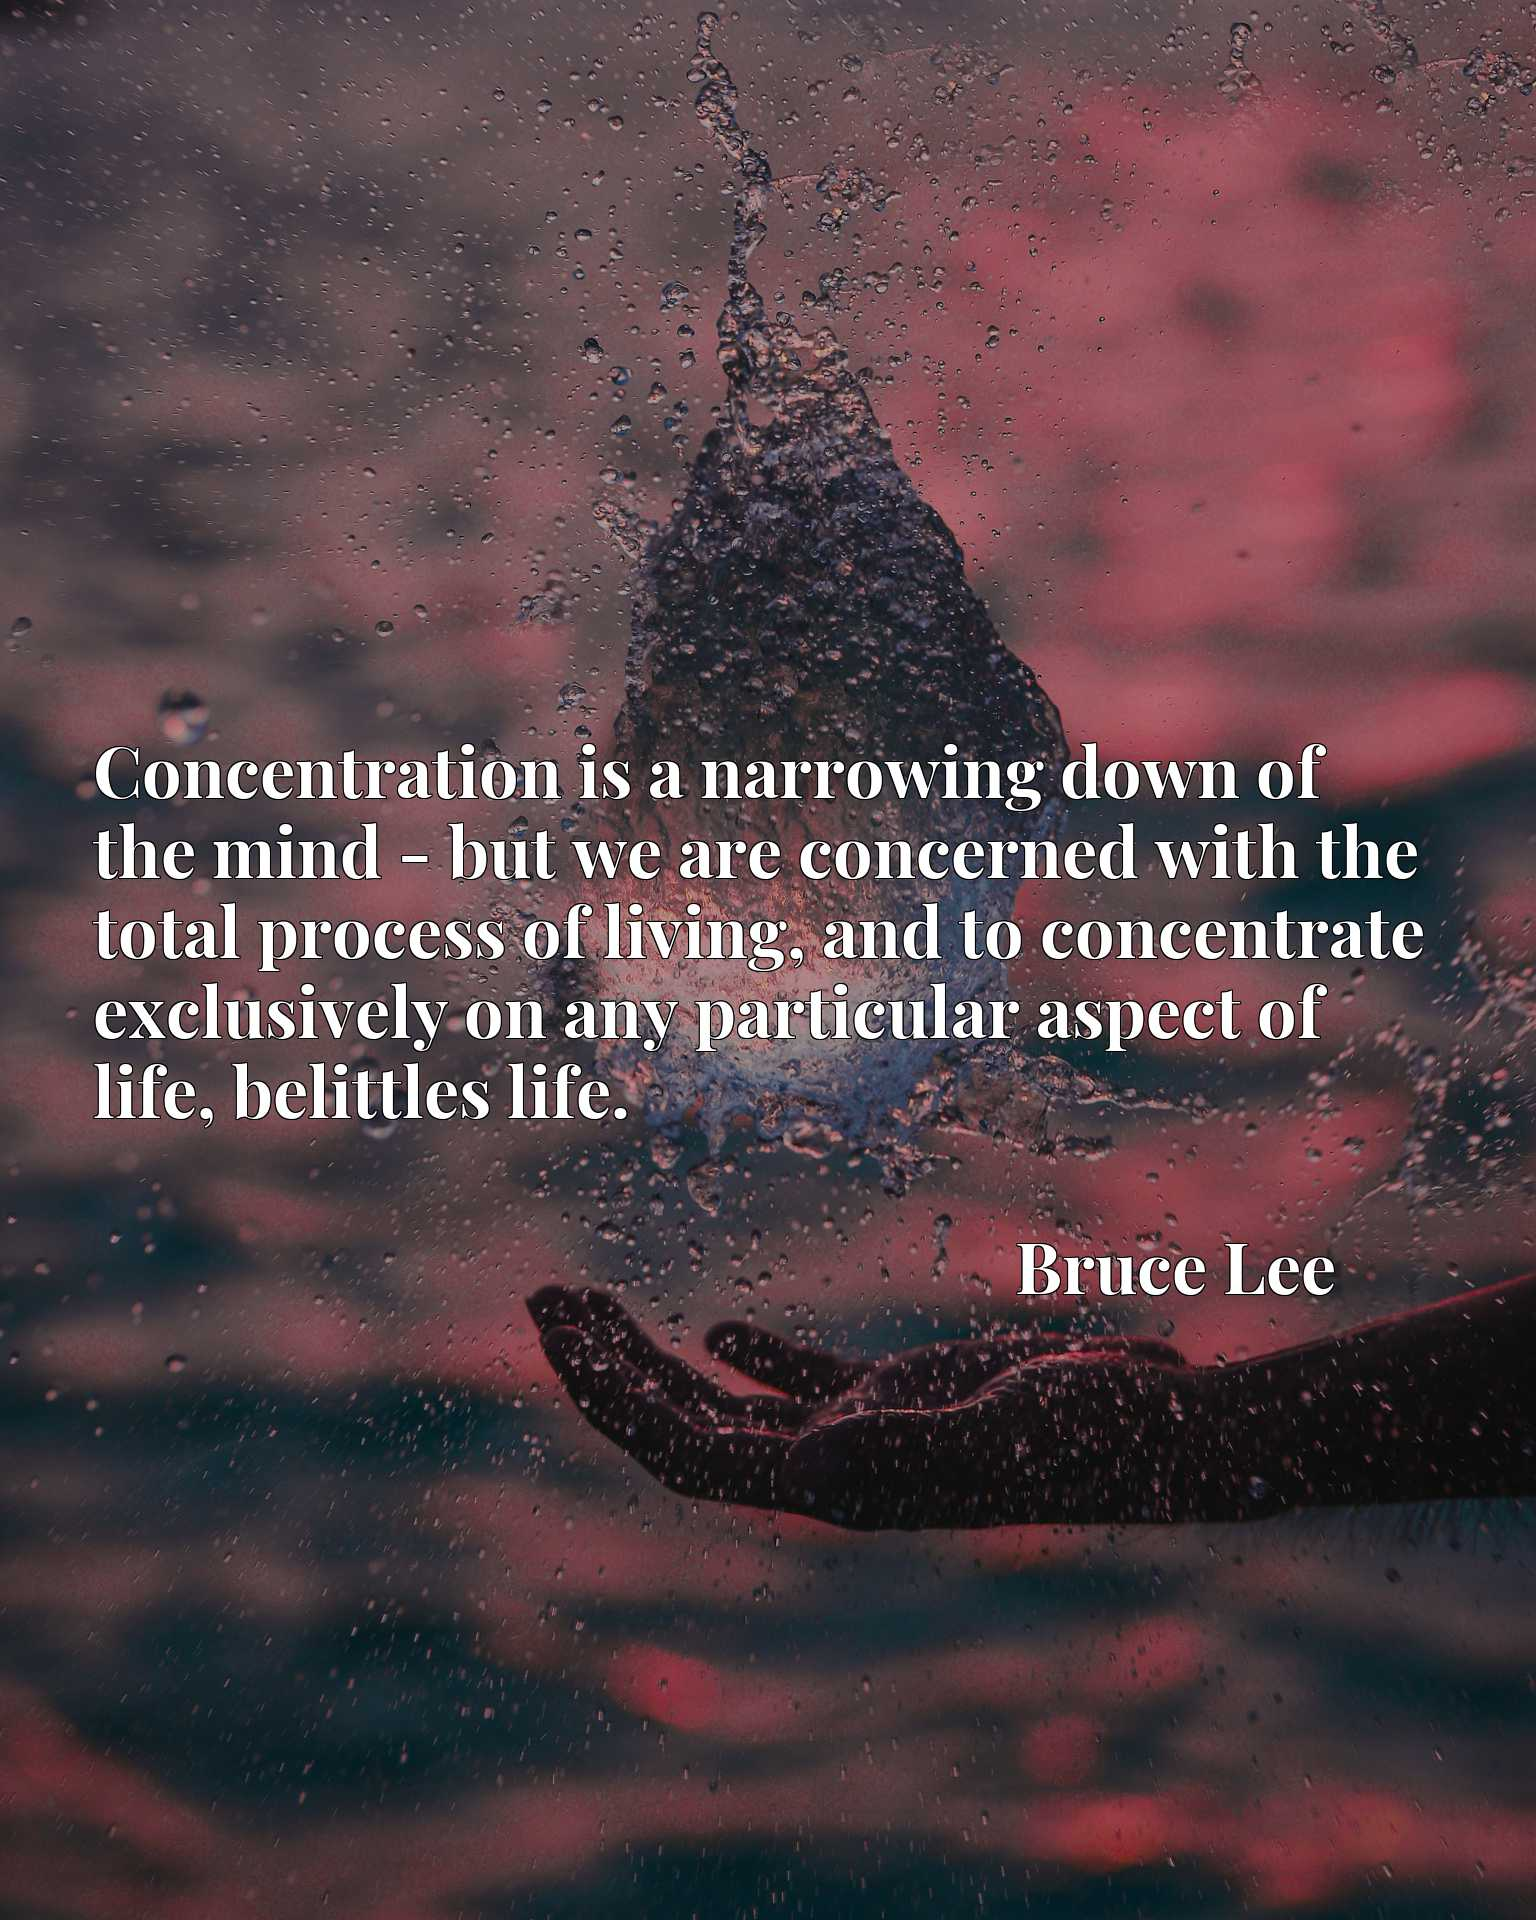 Concentration is a narrowing down of the mind - but we are concerned with the total process of living, and to concentrate exclusively on any particular aspect of life, belittles life.